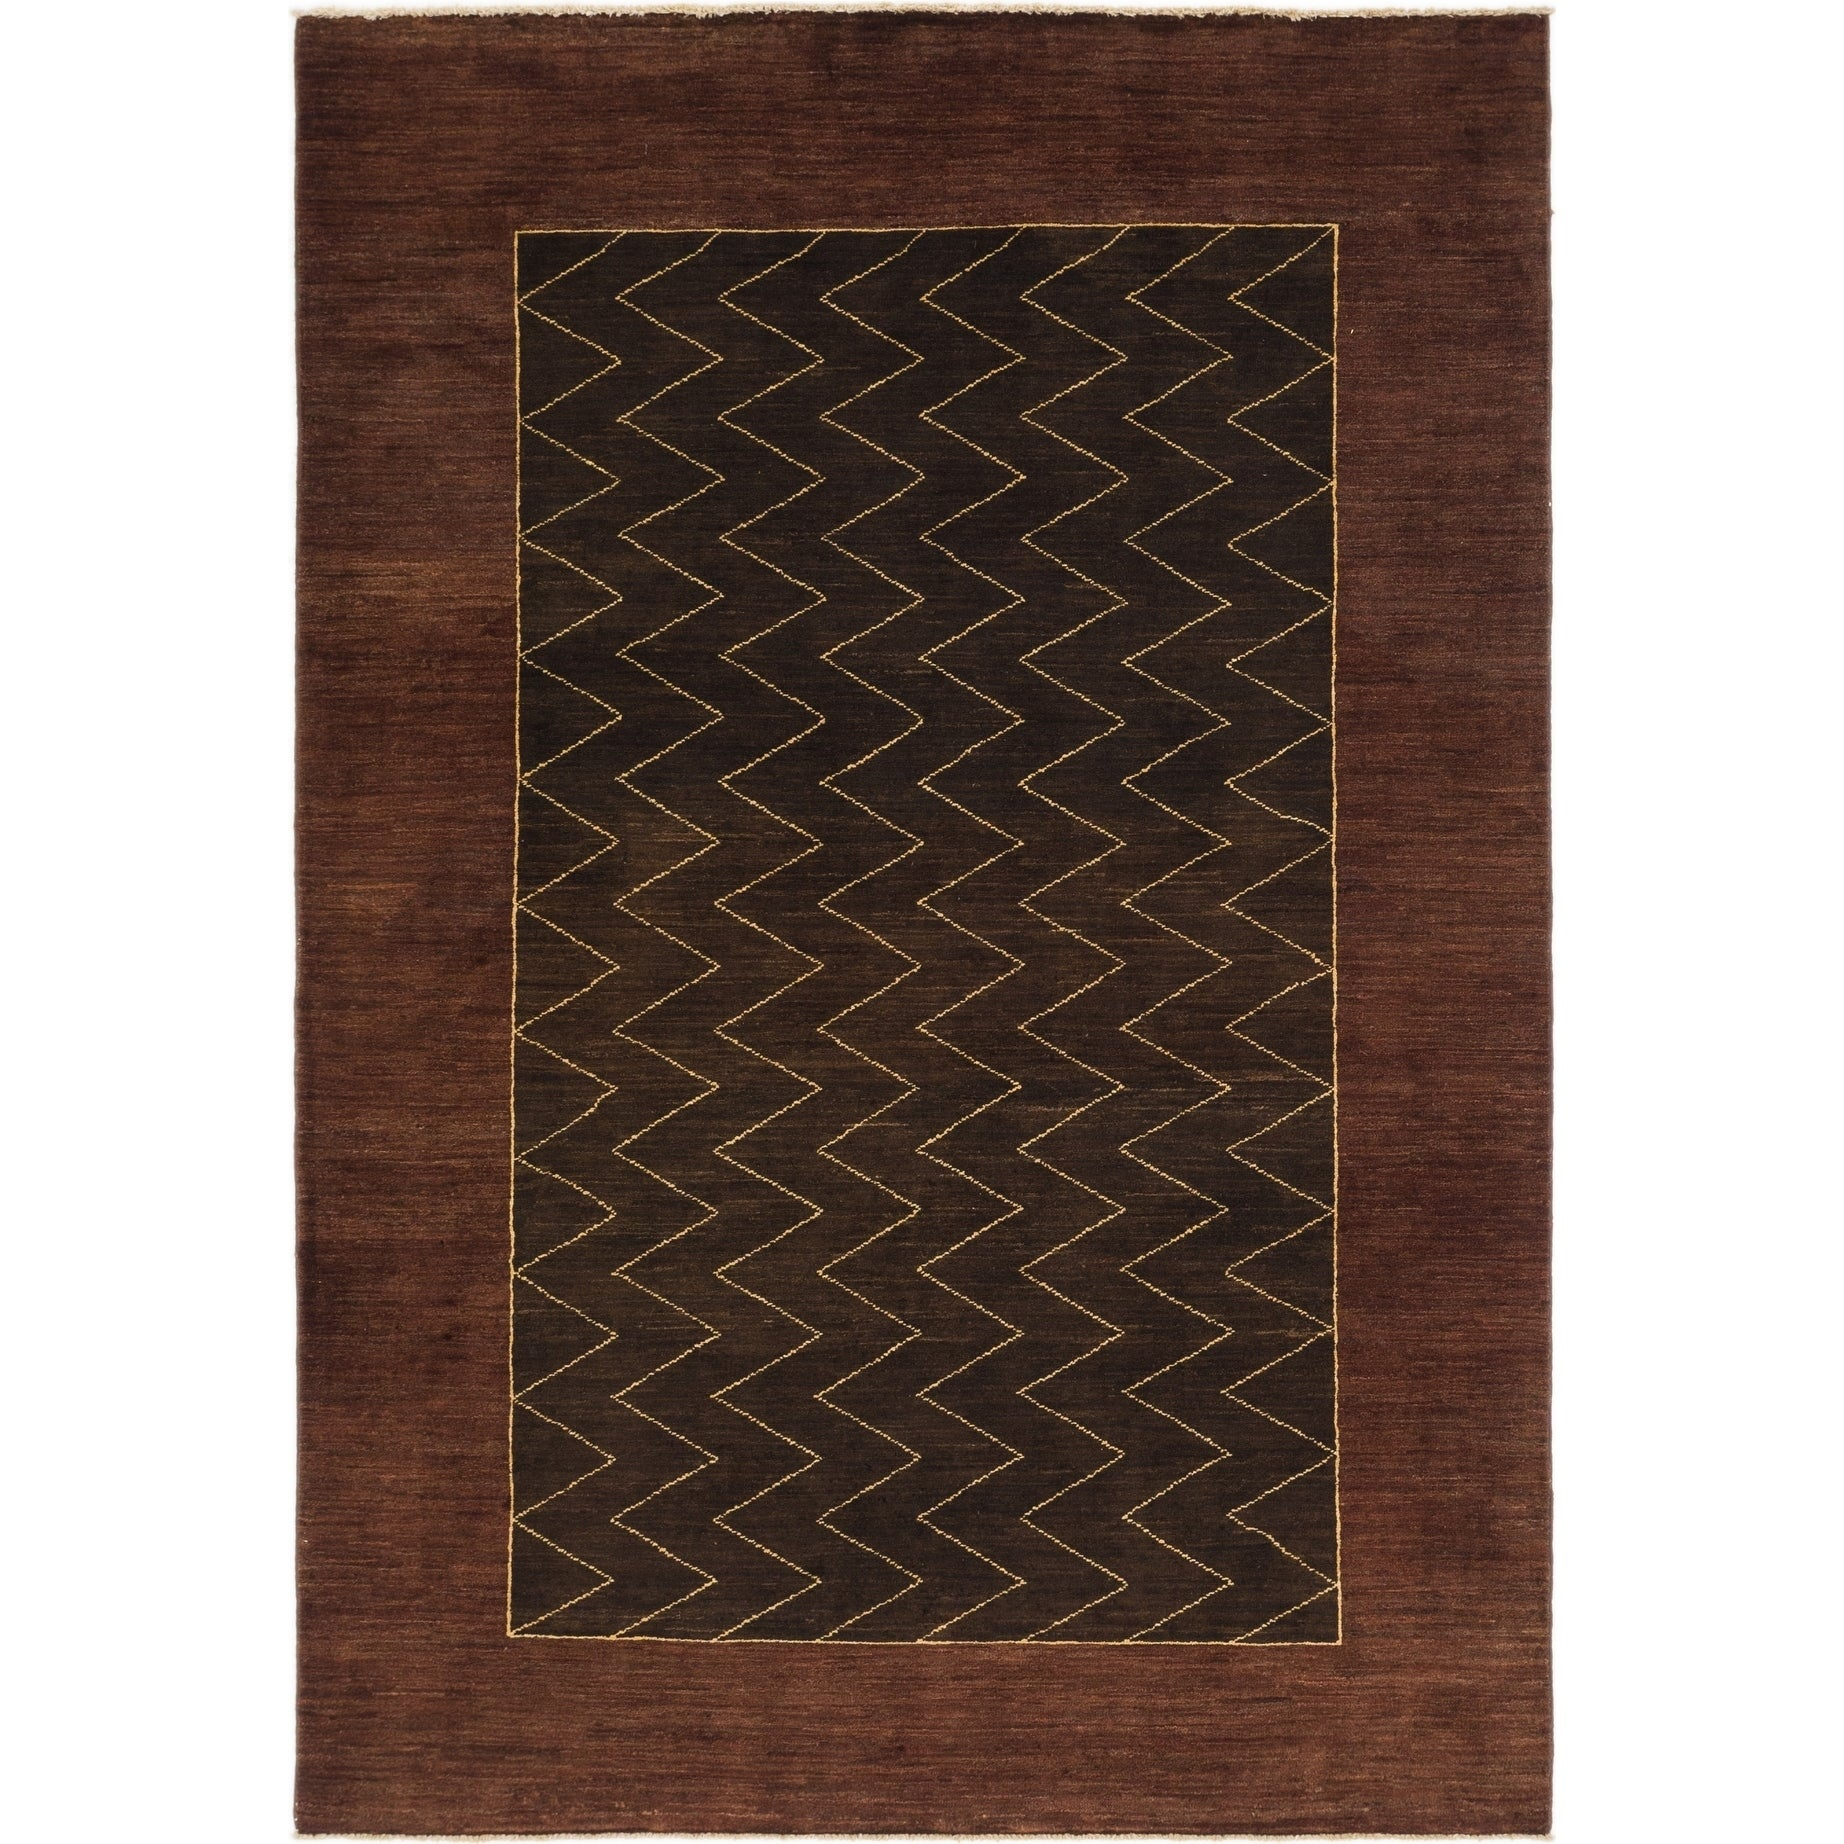 Hand Knotted Kashkuli Gabbeh Wool Area Rug - 5 6 x 8 (Plum Red - 5 6 x 8)